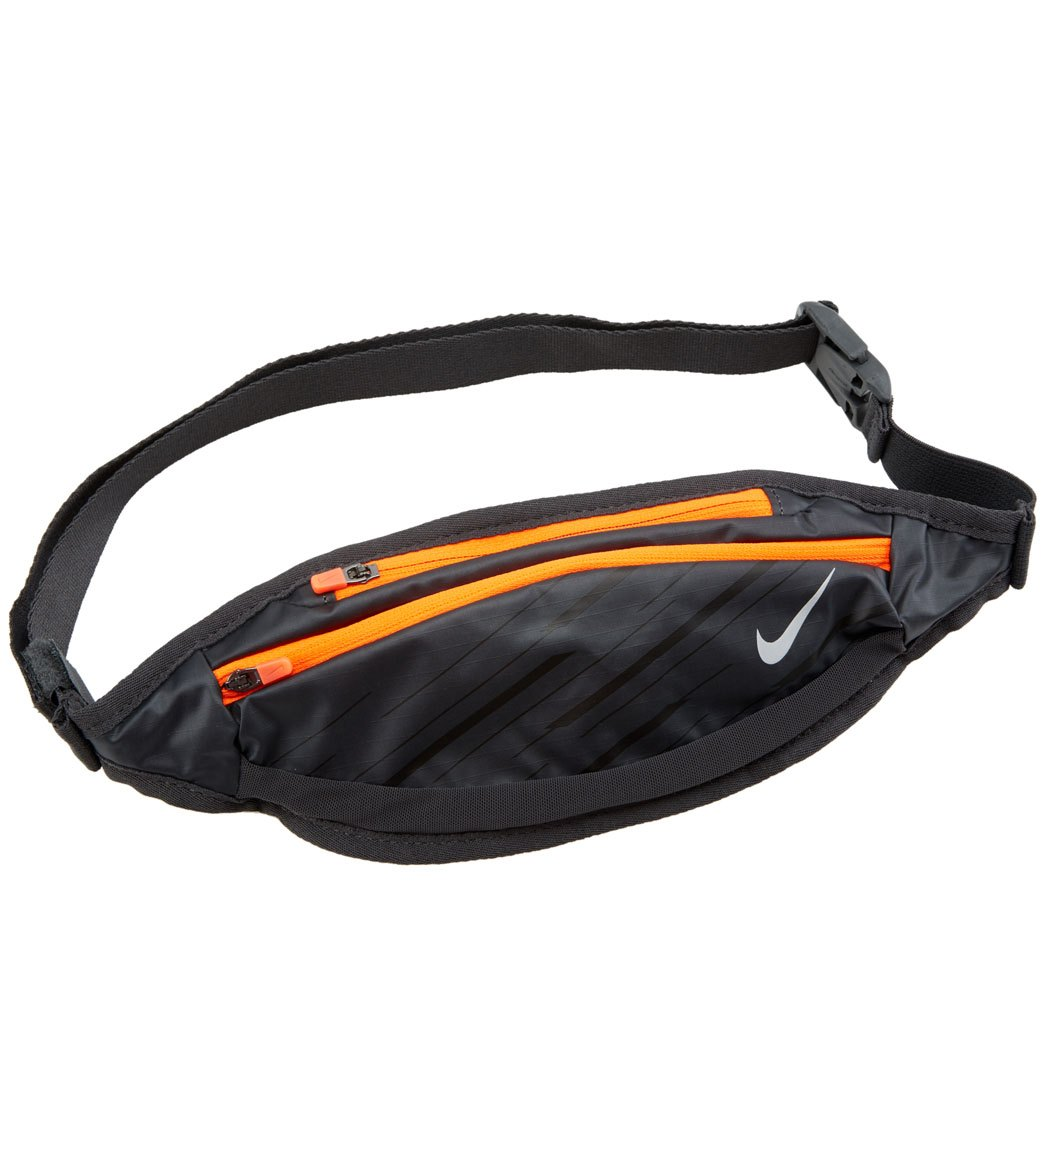 8a64ac7850 Nike Small Capacity Waist pack at SwimOutlet.com